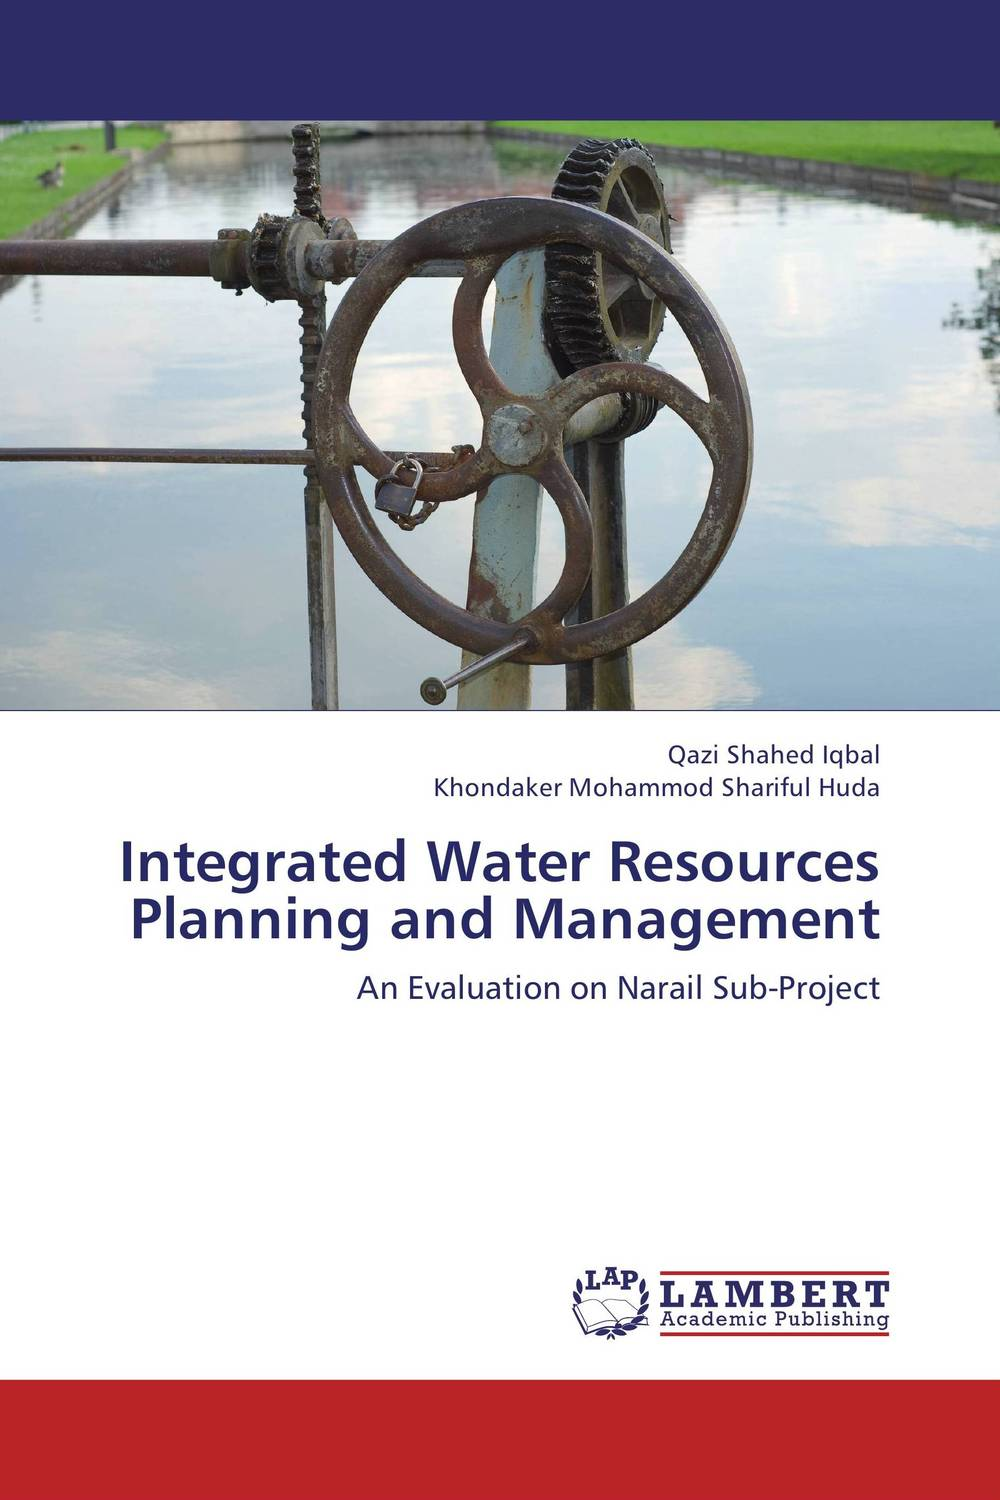 Integrated Water Resources Planning and Management planning for development of water resources of maner river